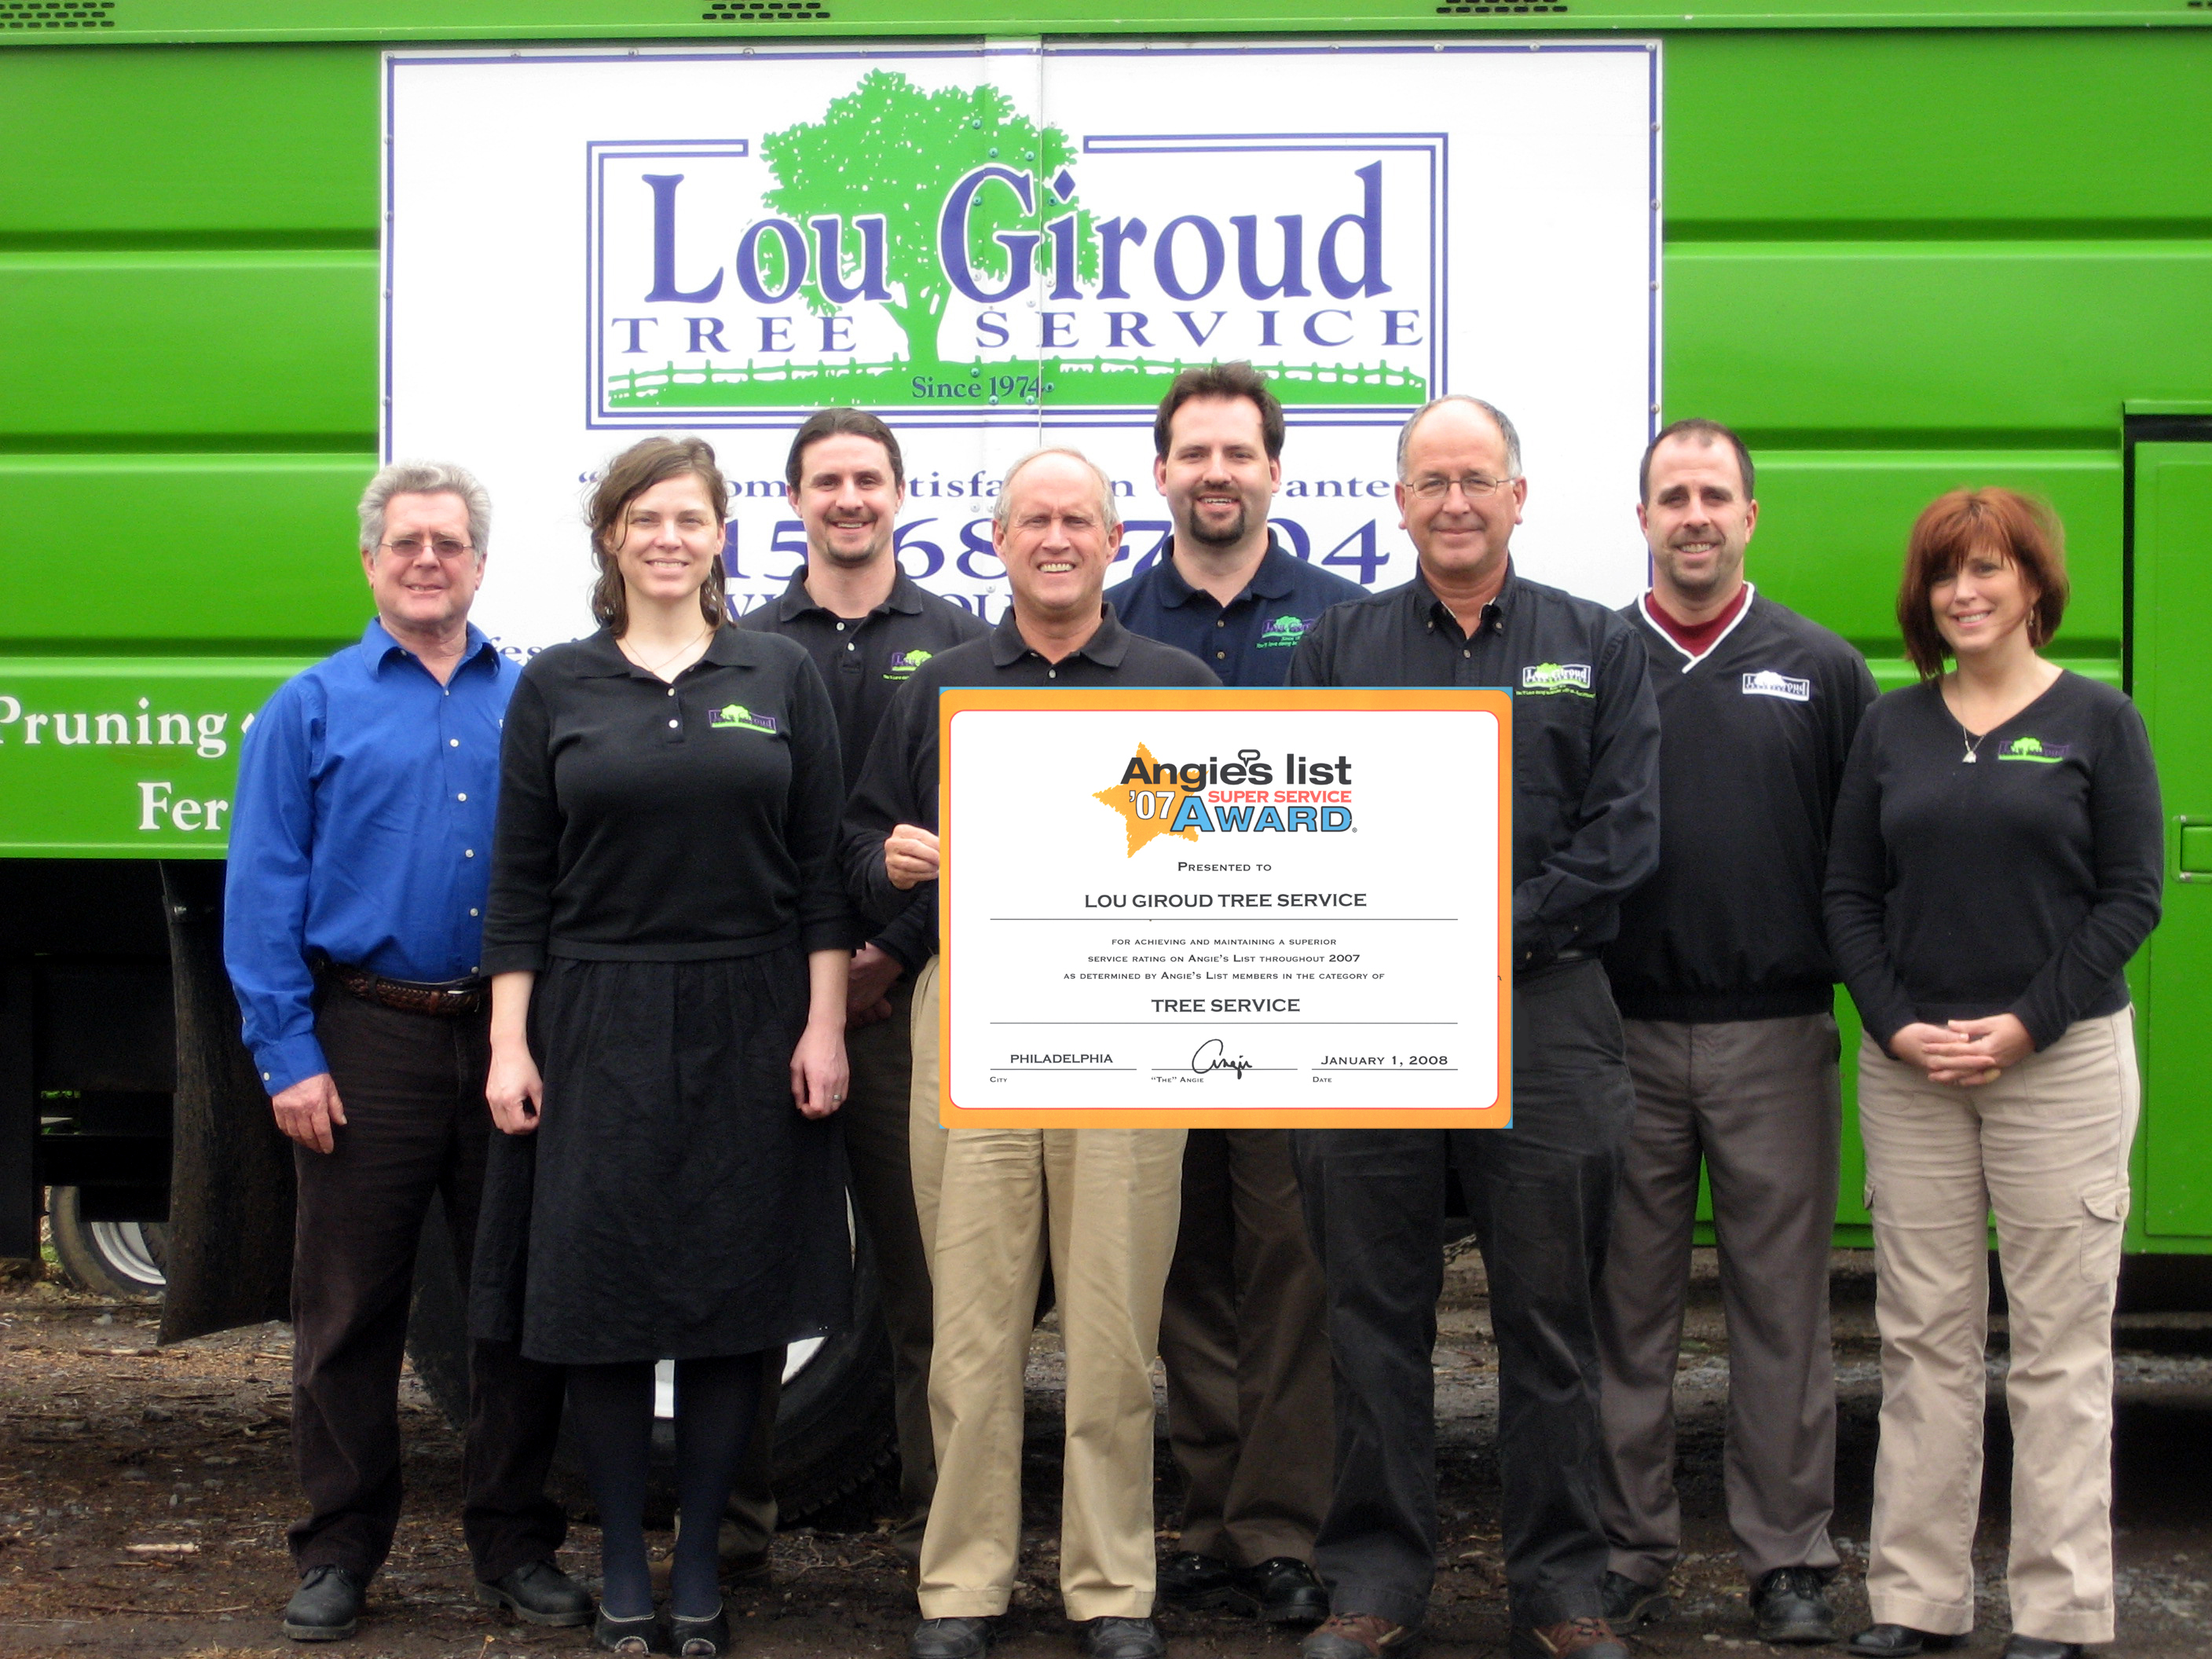 Lou Giroud Tree Service Earns Third Consecutive Angie's List Super Service  Award: Award Reflects Giroud's Consistently High Level of Customer  Satisfaction